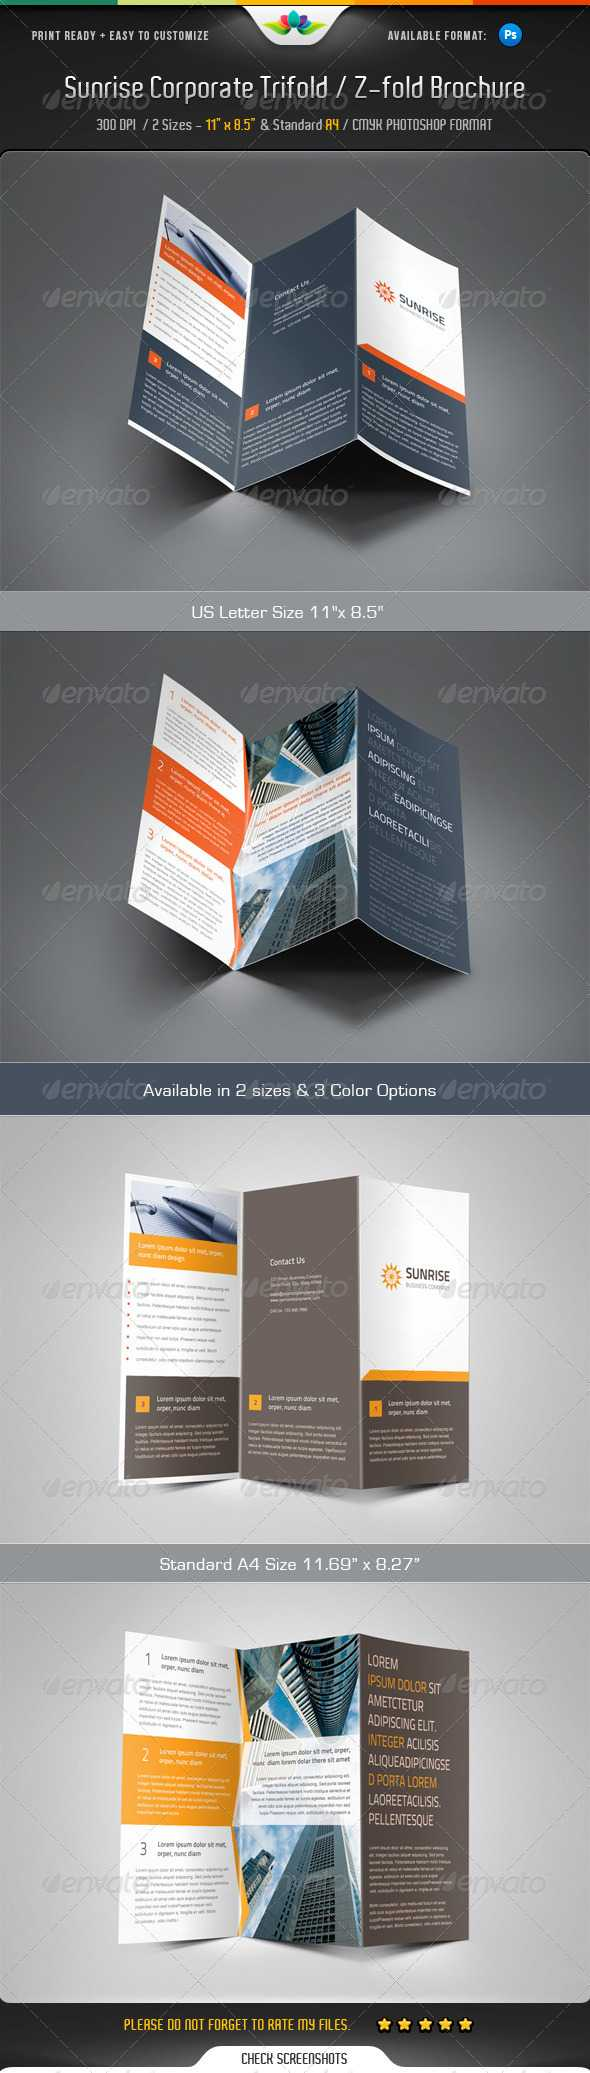 Z Fold Brochure Templates From Graphicriver Within Z Fold Brochure Template Indesign